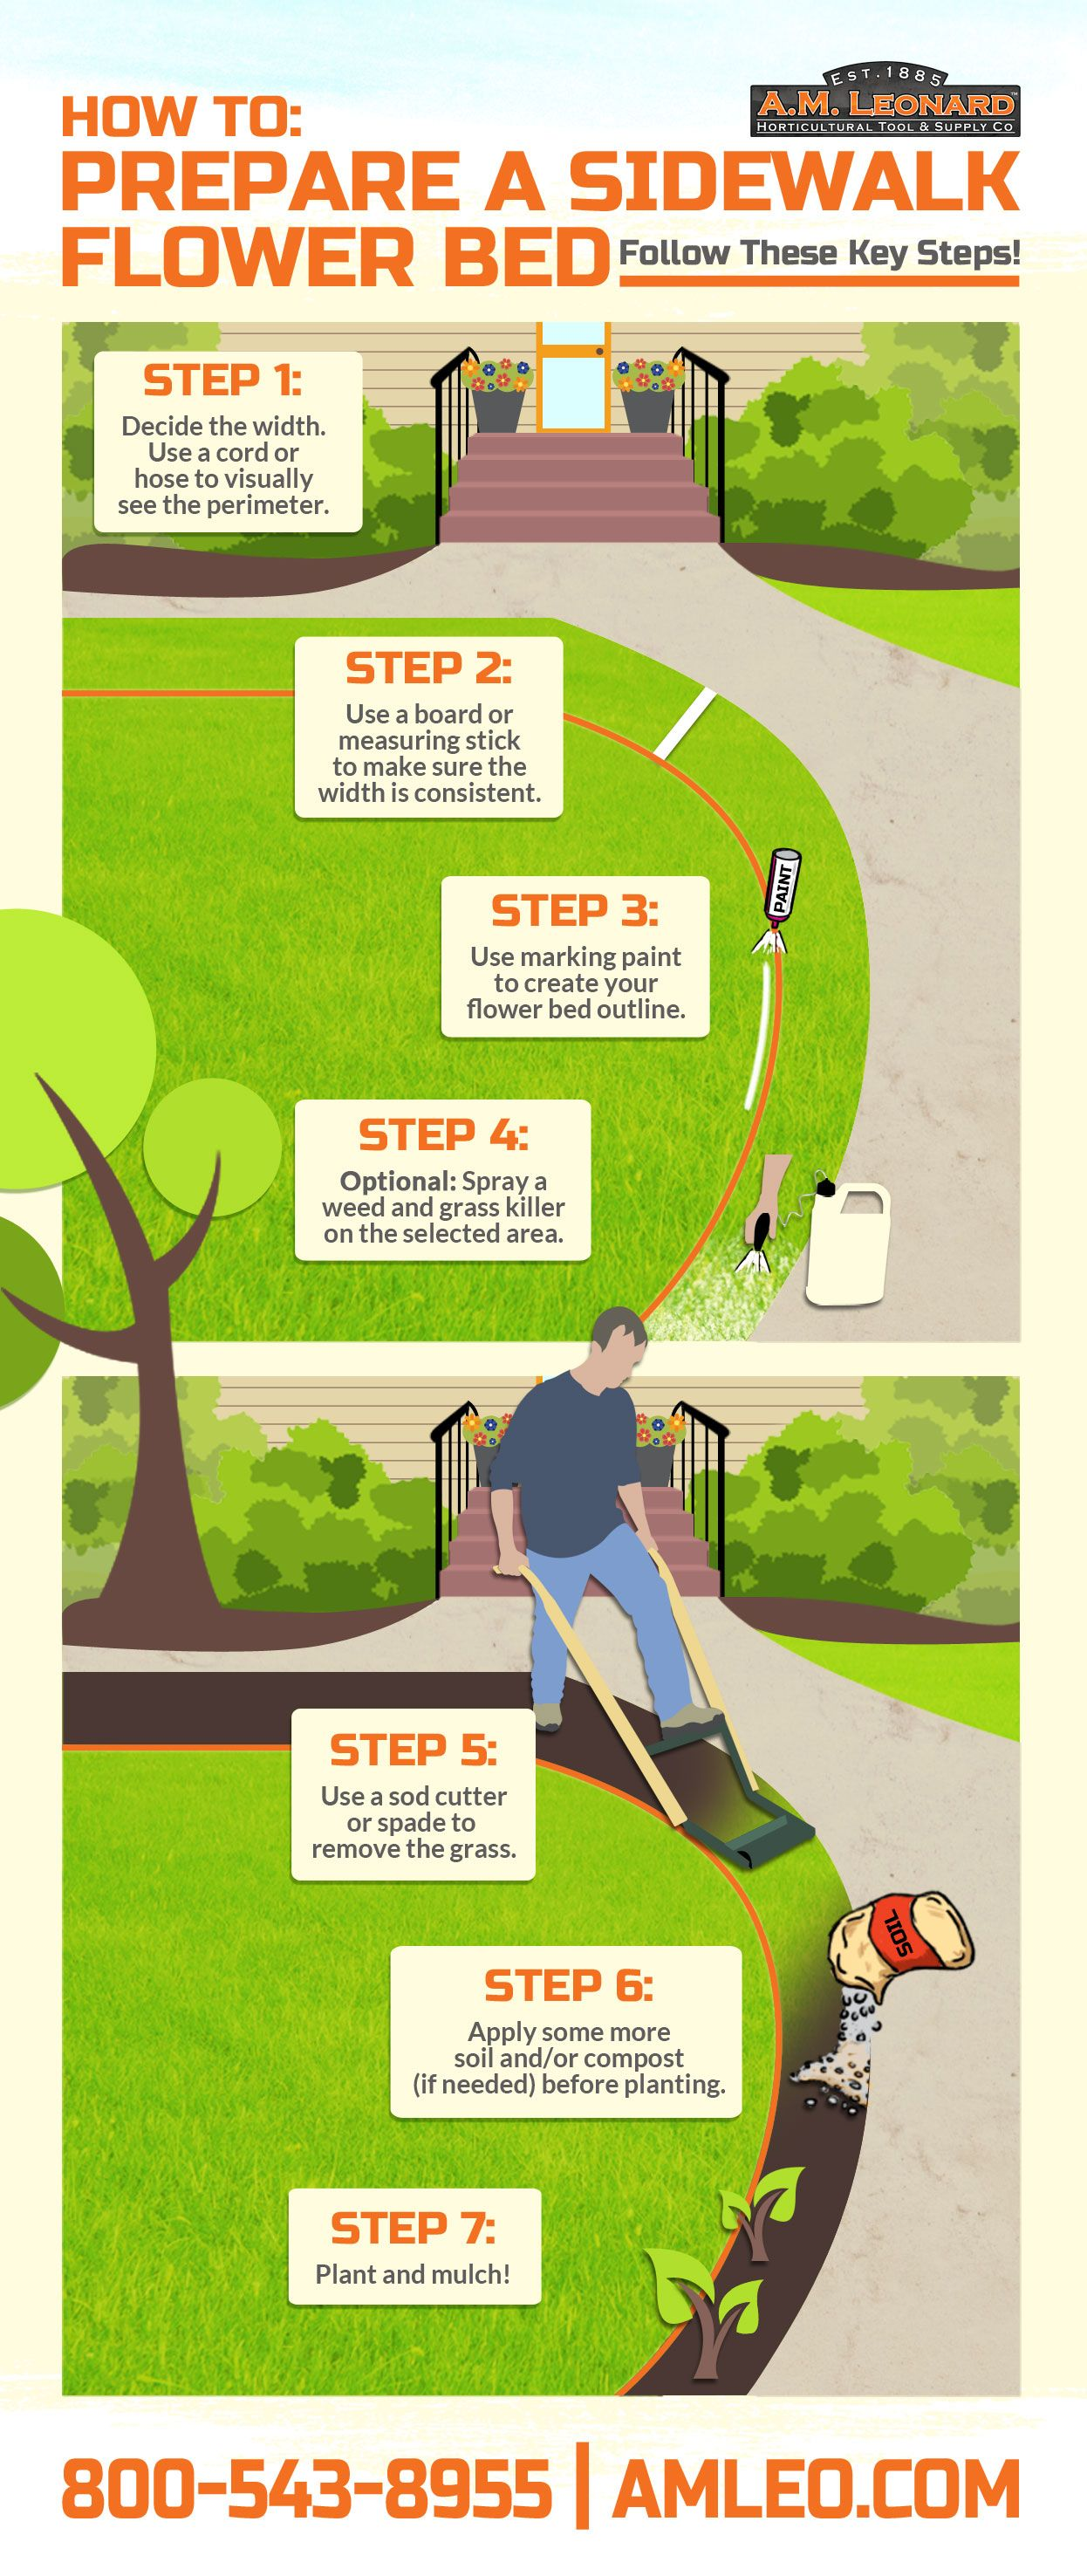 Weeds in flower beds spray - Sidewalk Flowerbeds Planning The Details Of A Landscaping Project Is The First Step You Should